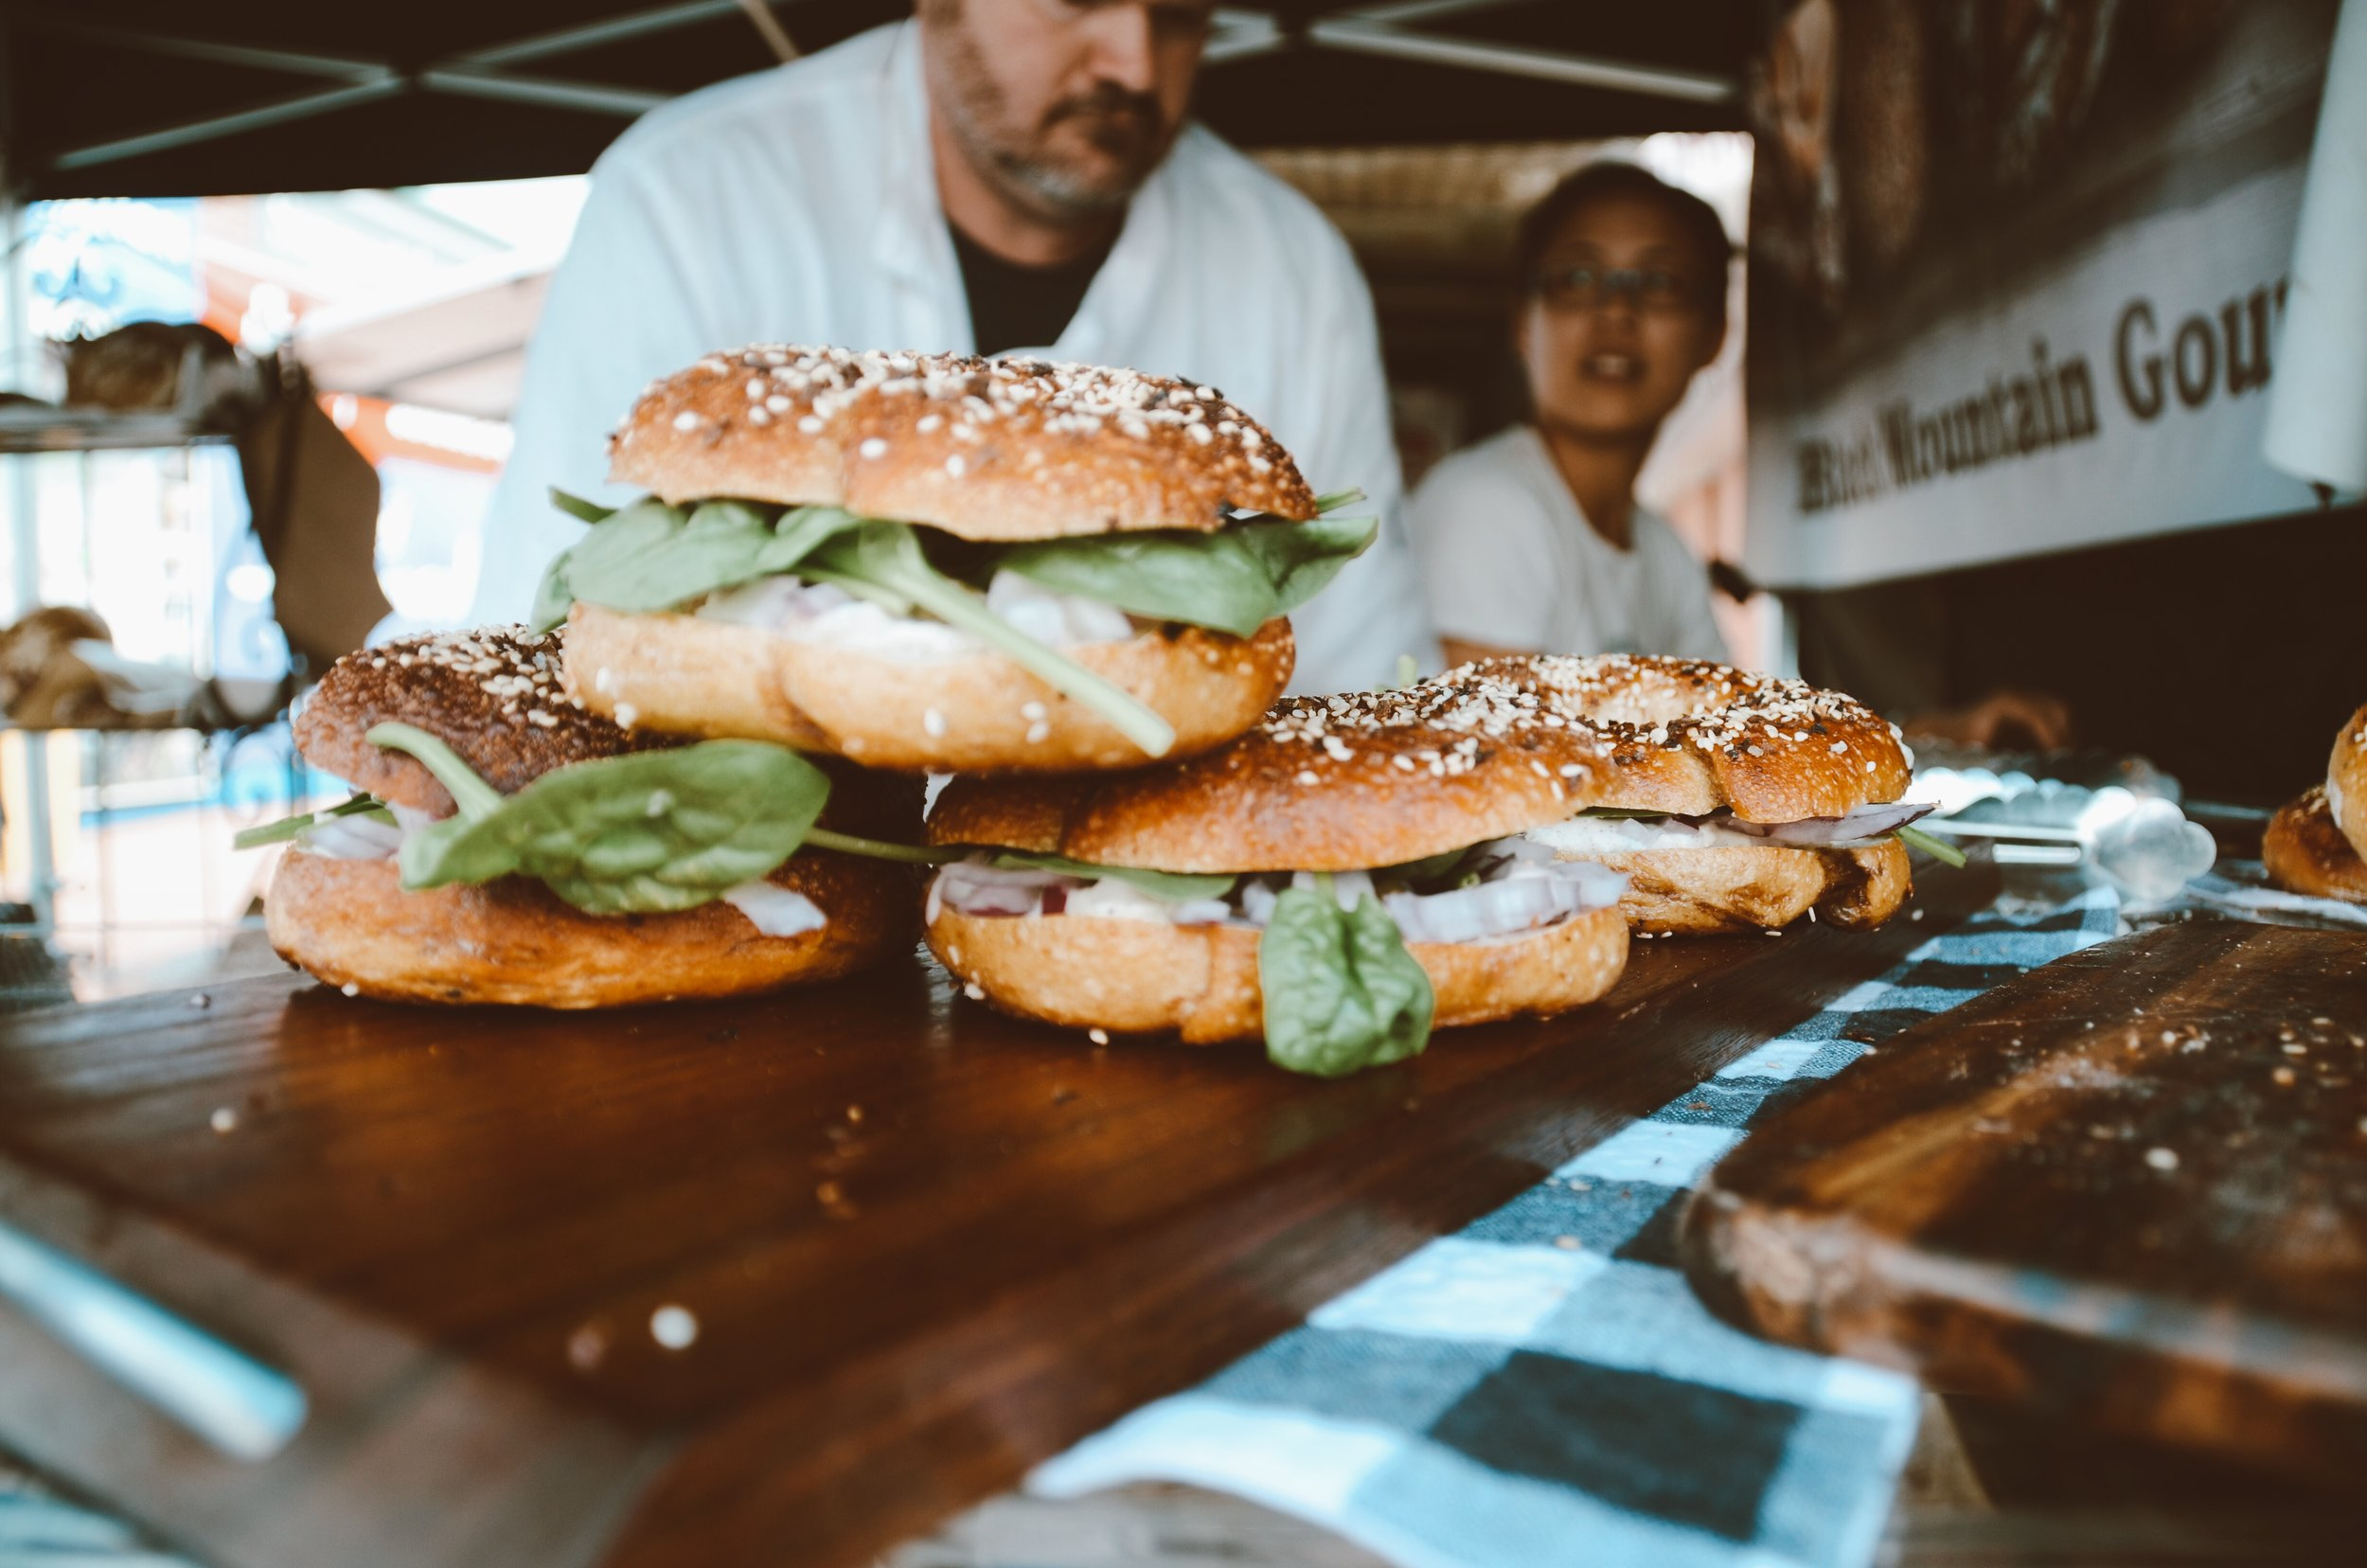 Bagels at the Black Mountain Gourmet market stall